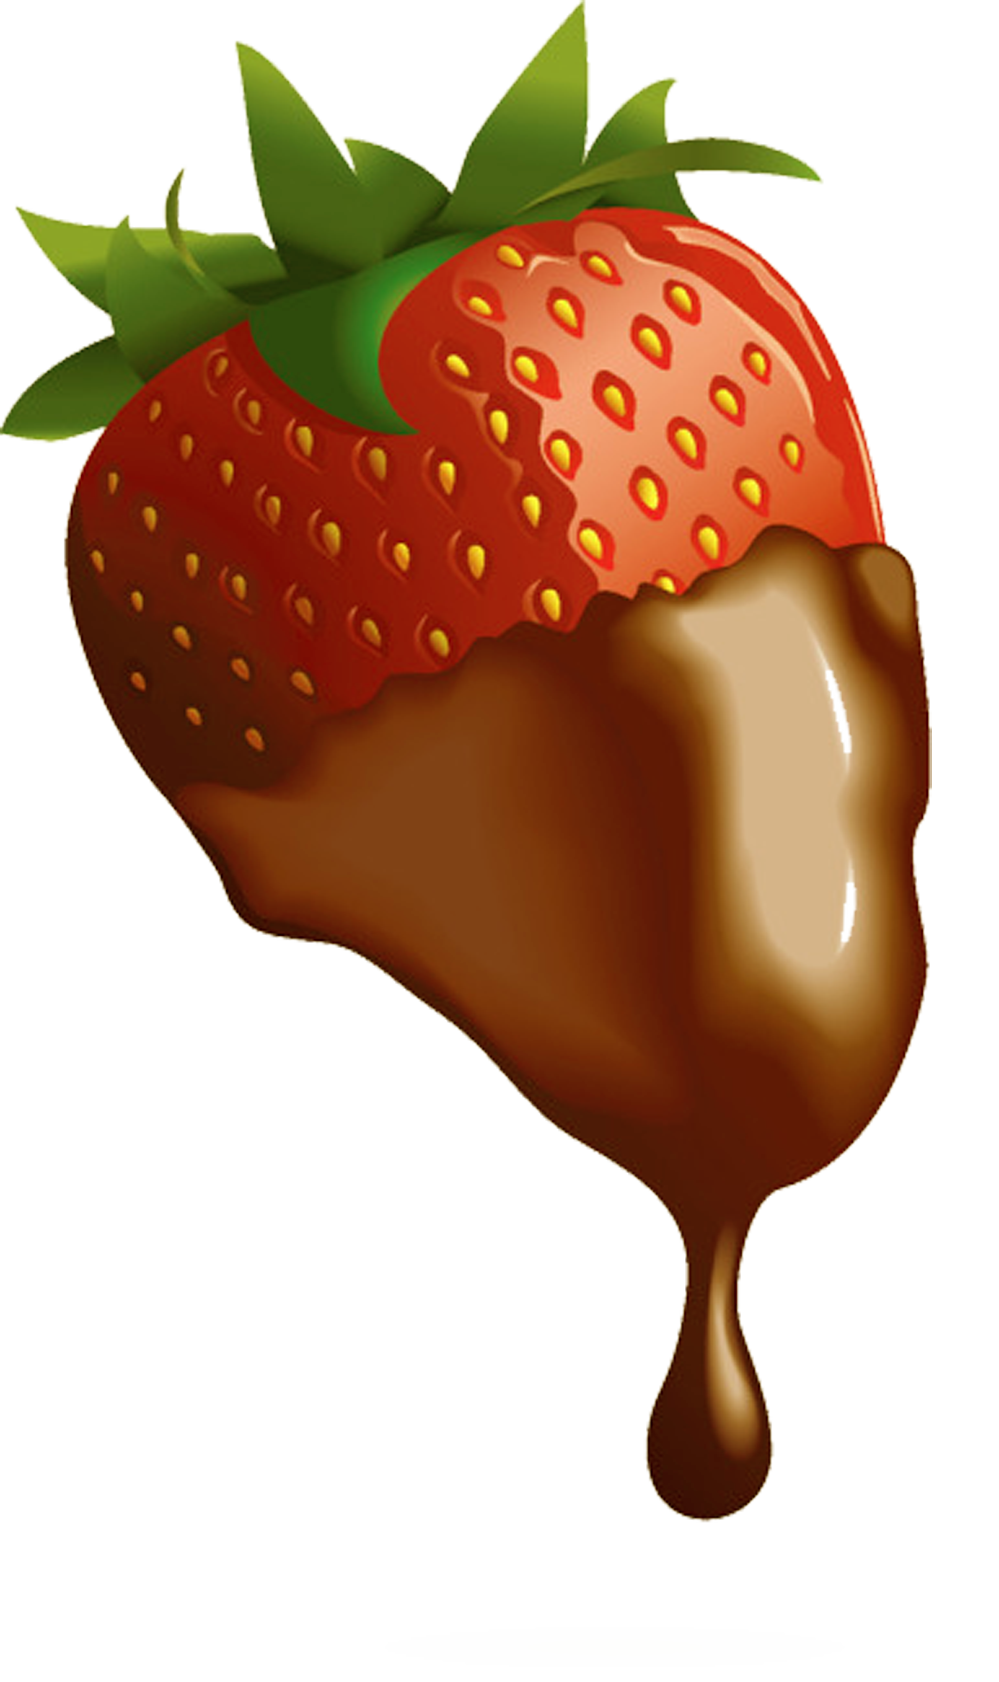 Clip Art Library Library Strawberries Clipart Splash Strawberry Chocolate Covered Fruit Strawberry Clipart Strawberry Strawberry Art